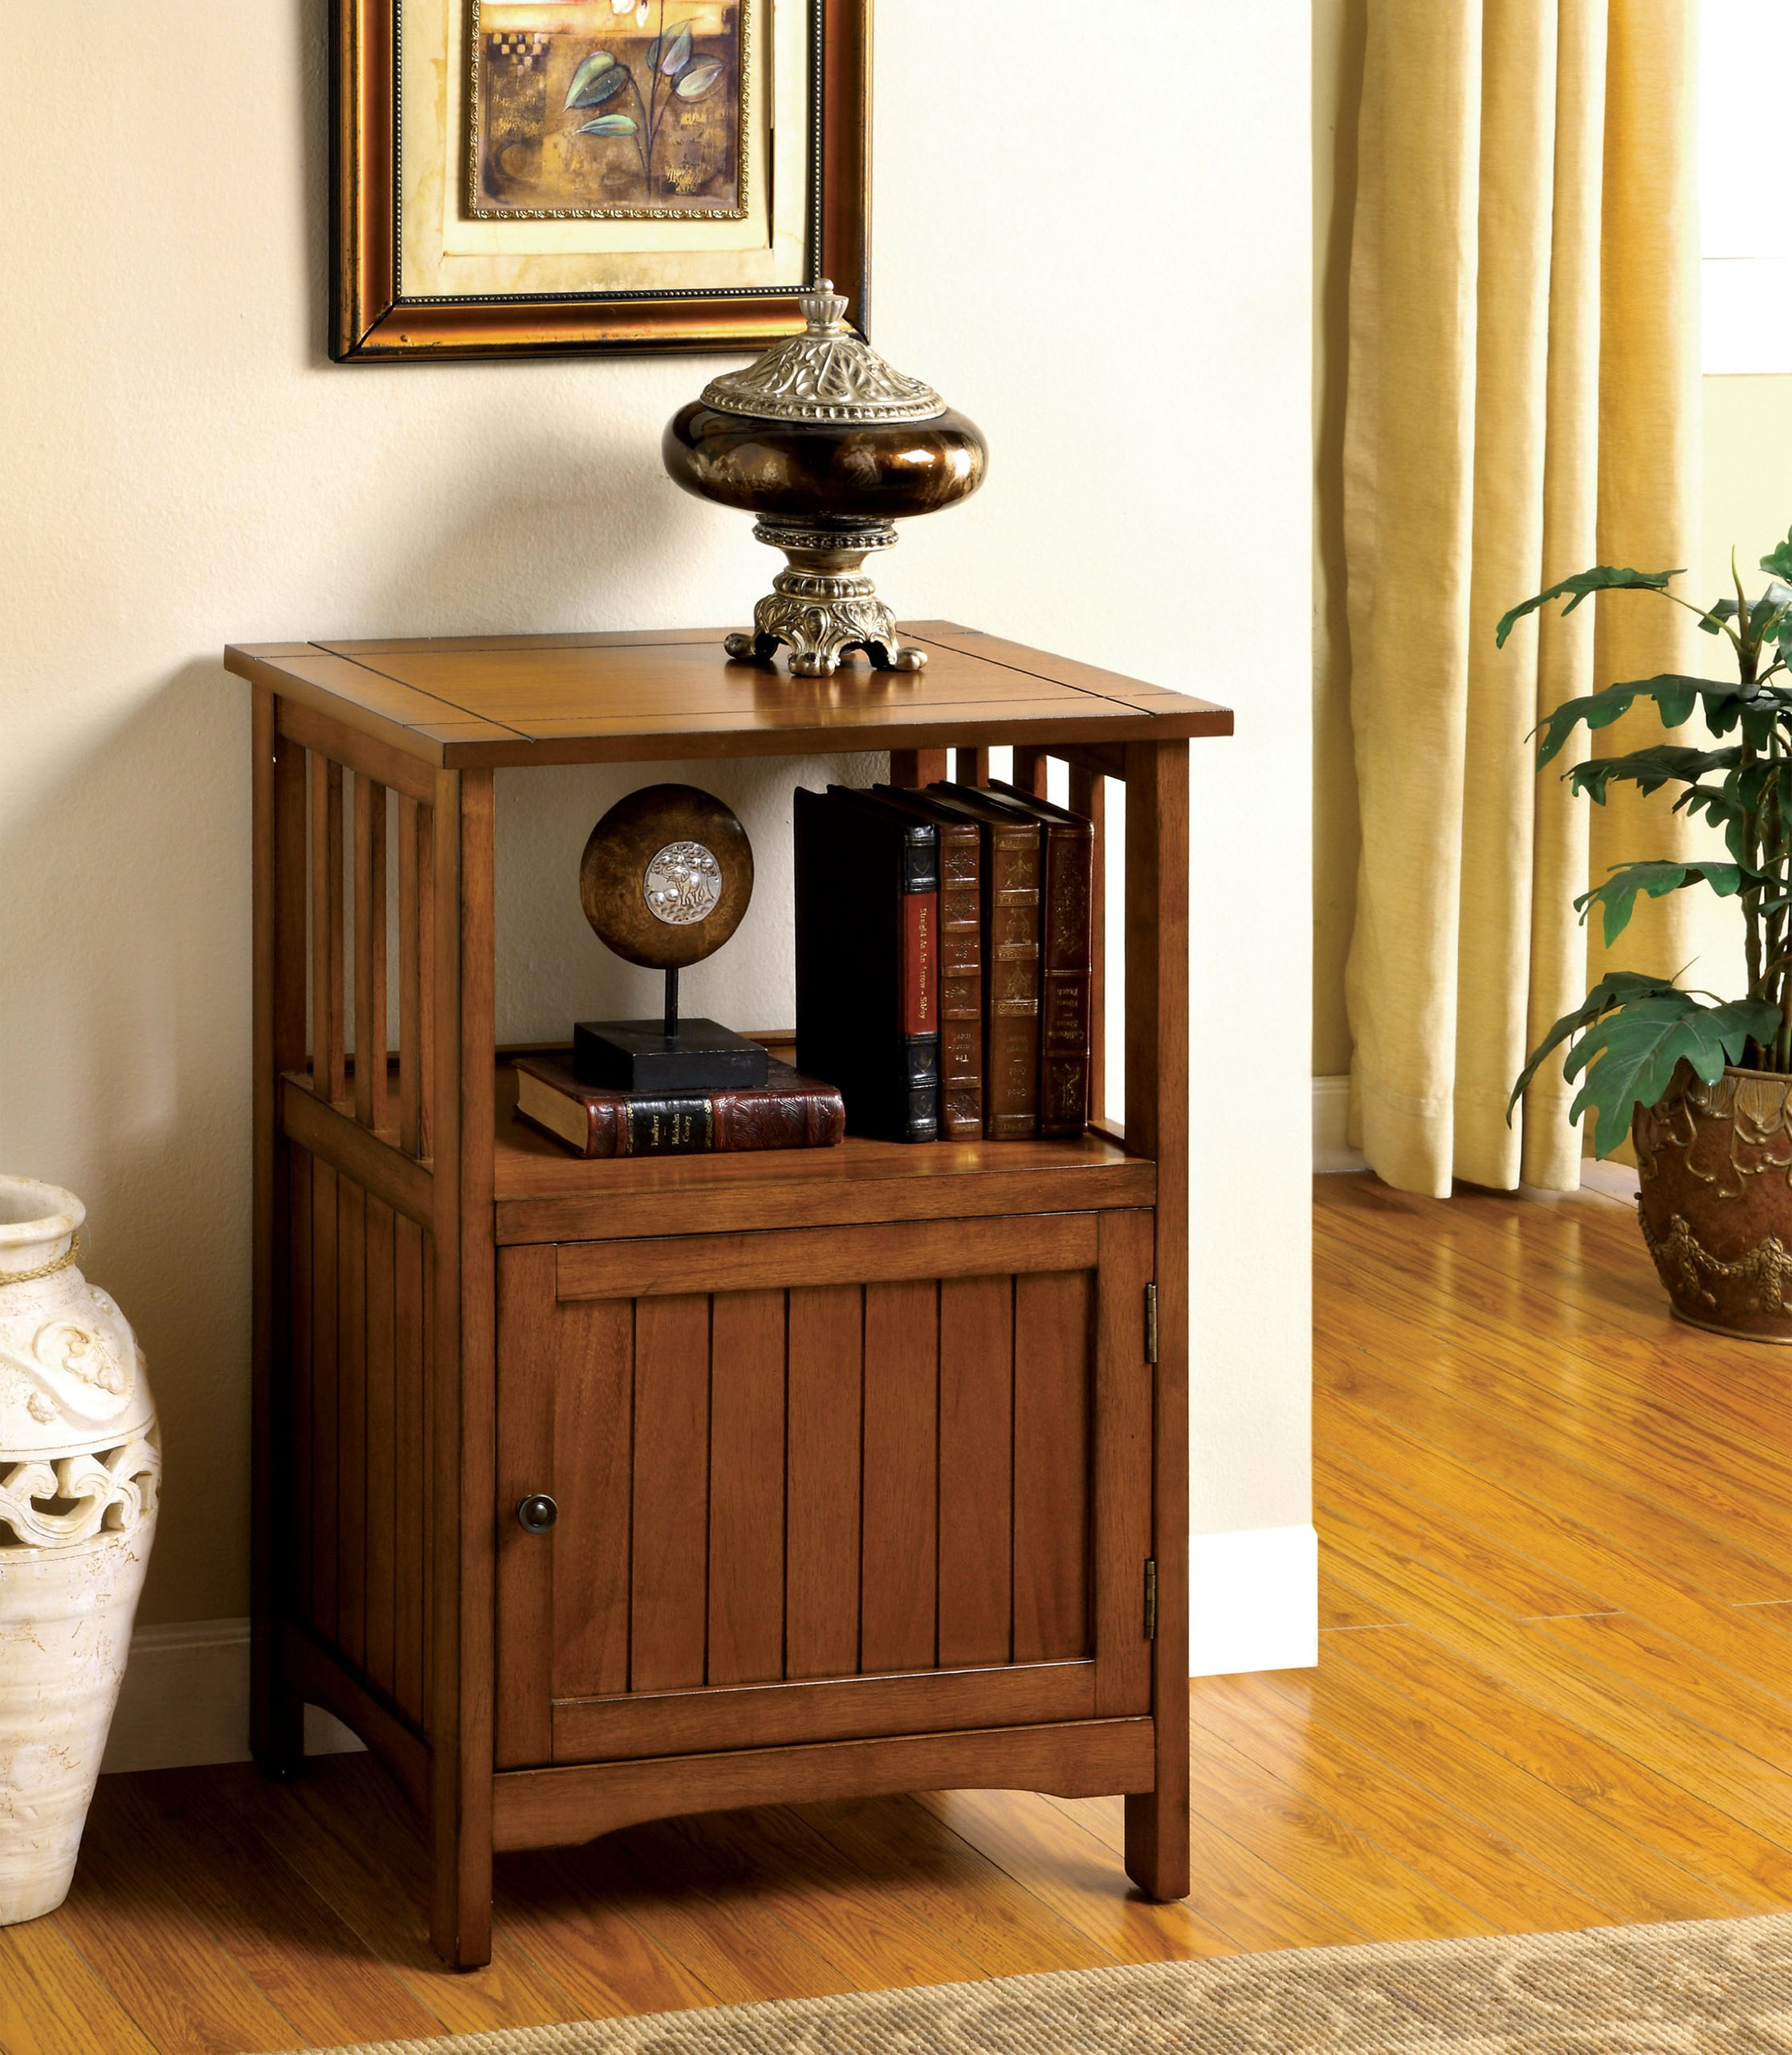 Furniture of America Pompey Mission Style End Table